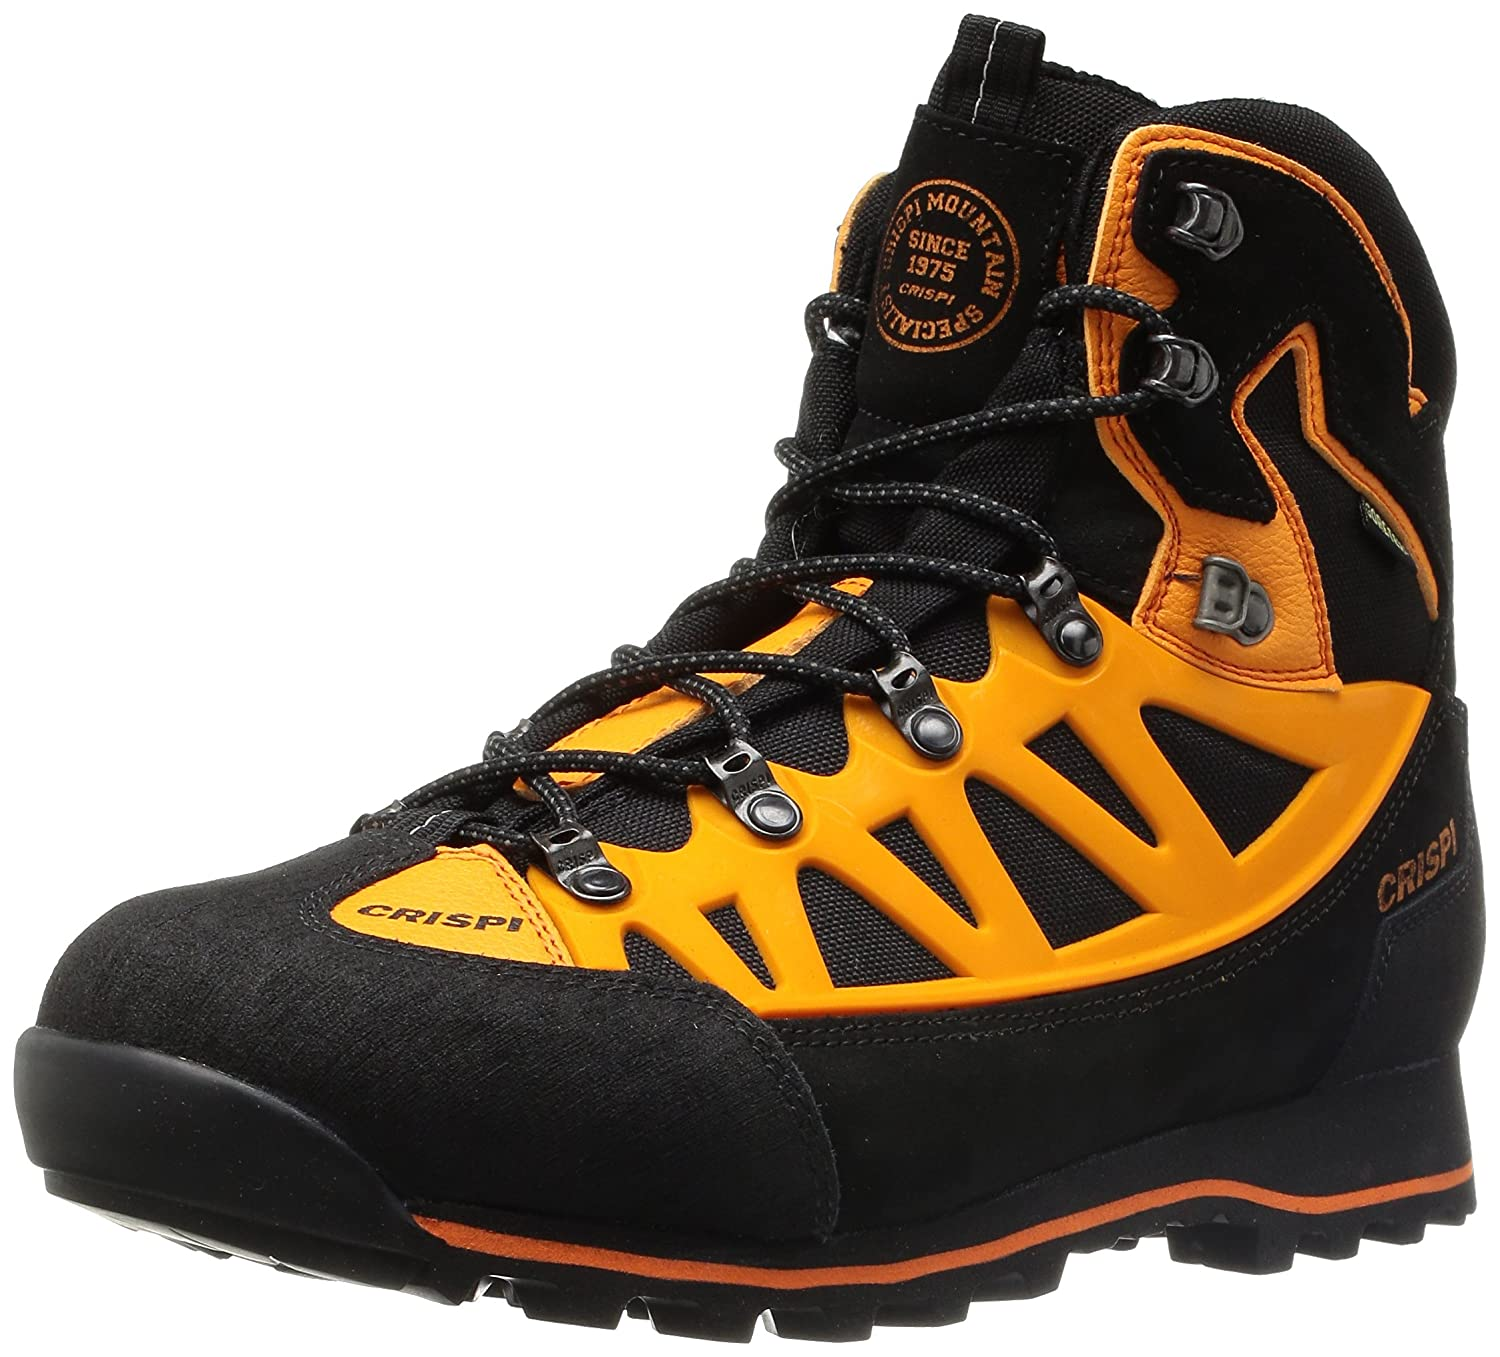 CRISPI Schuh Skogshorn Ascent Plus GTX® Orange High Visibility